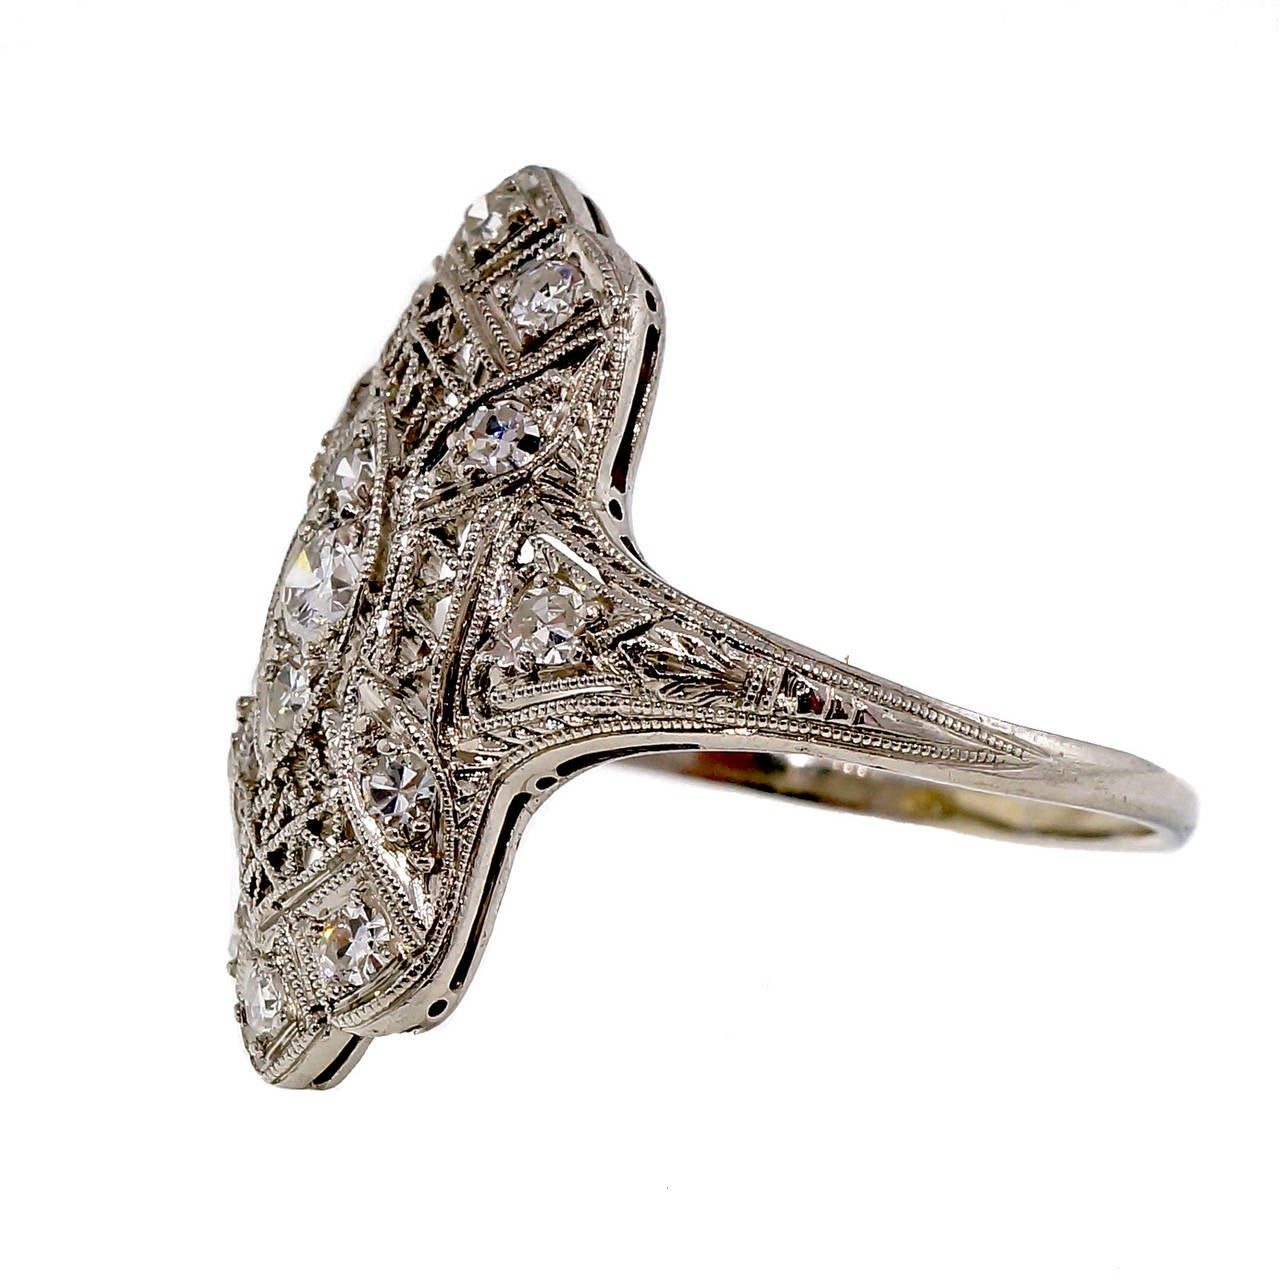 Edwardian Art Deco Diamond Platinum Ring For Sale at 1stdibs